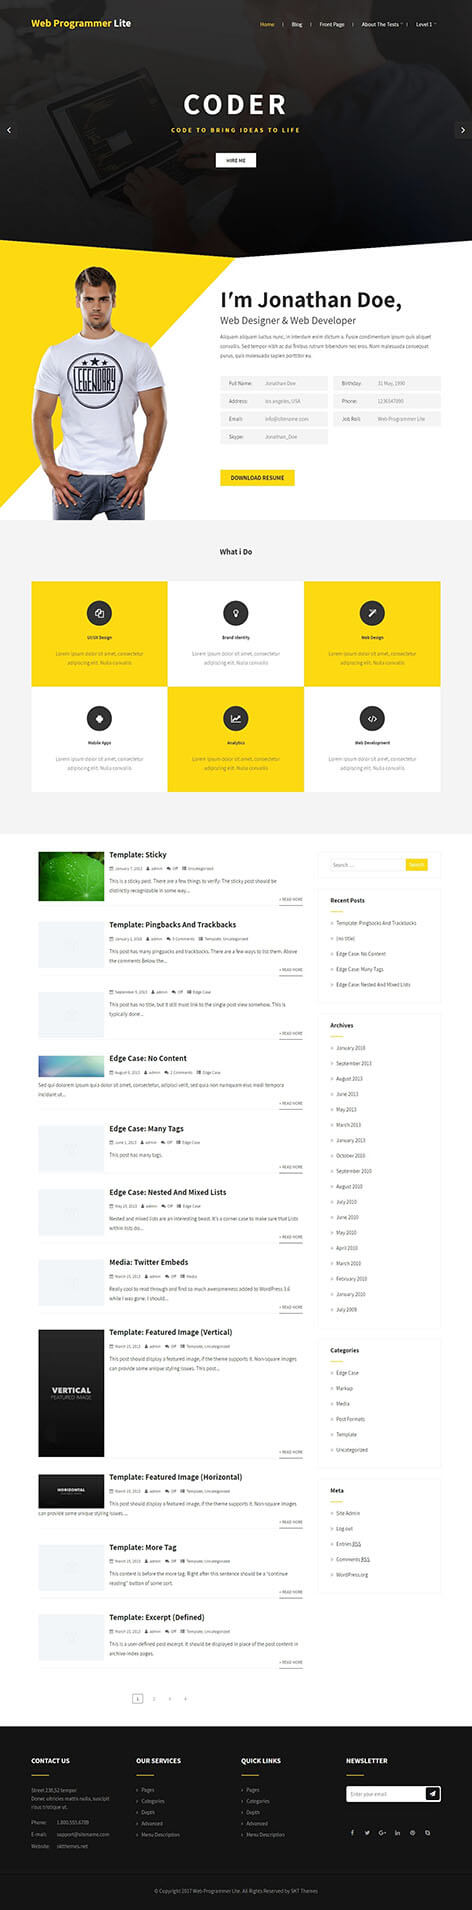 Free designer WordPress theme